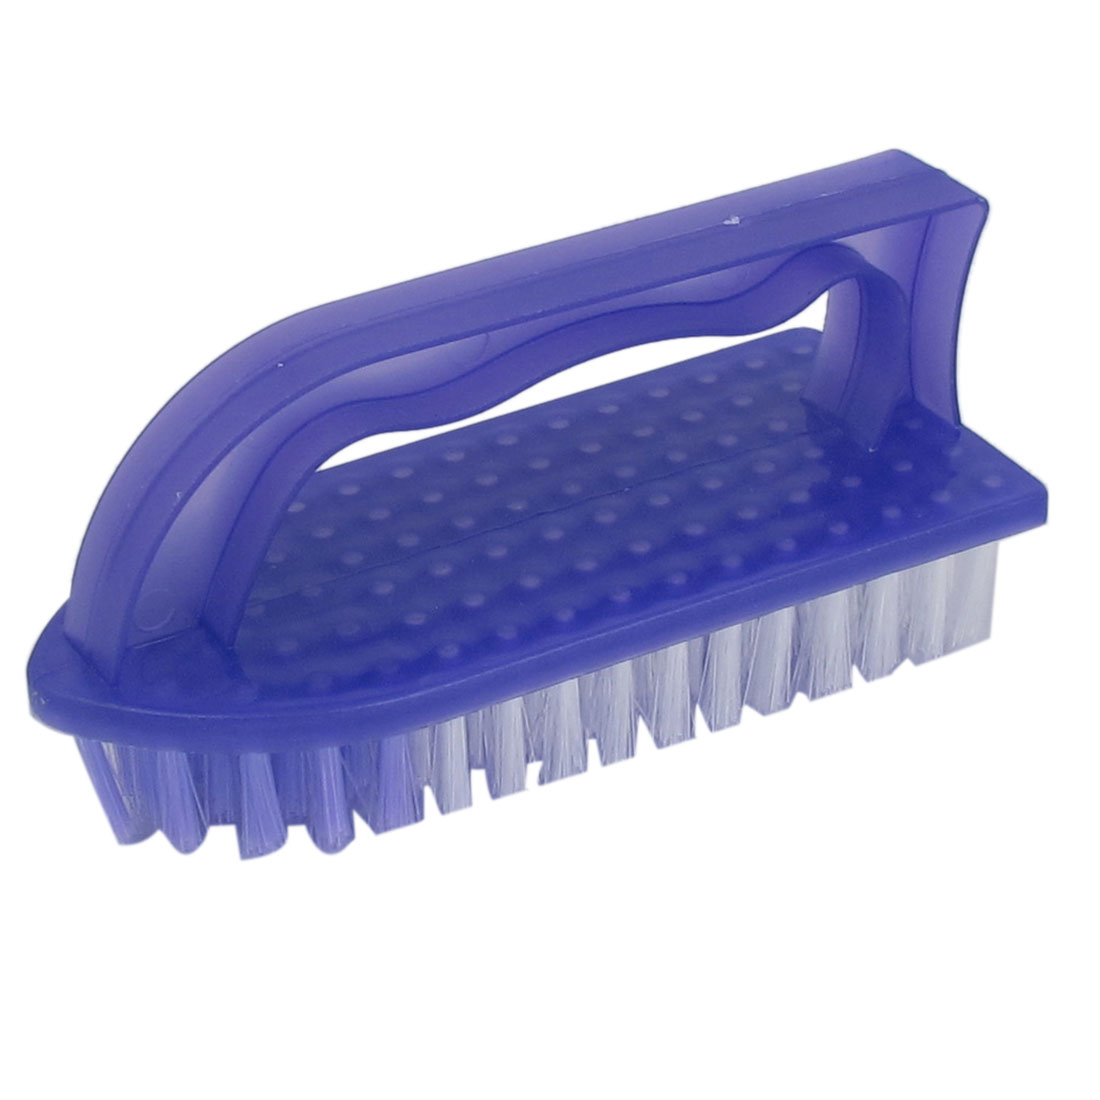 Purple Plastic Shell Clothes Shoes Floor Cleaning Washing Scrubbing Scrub Brush